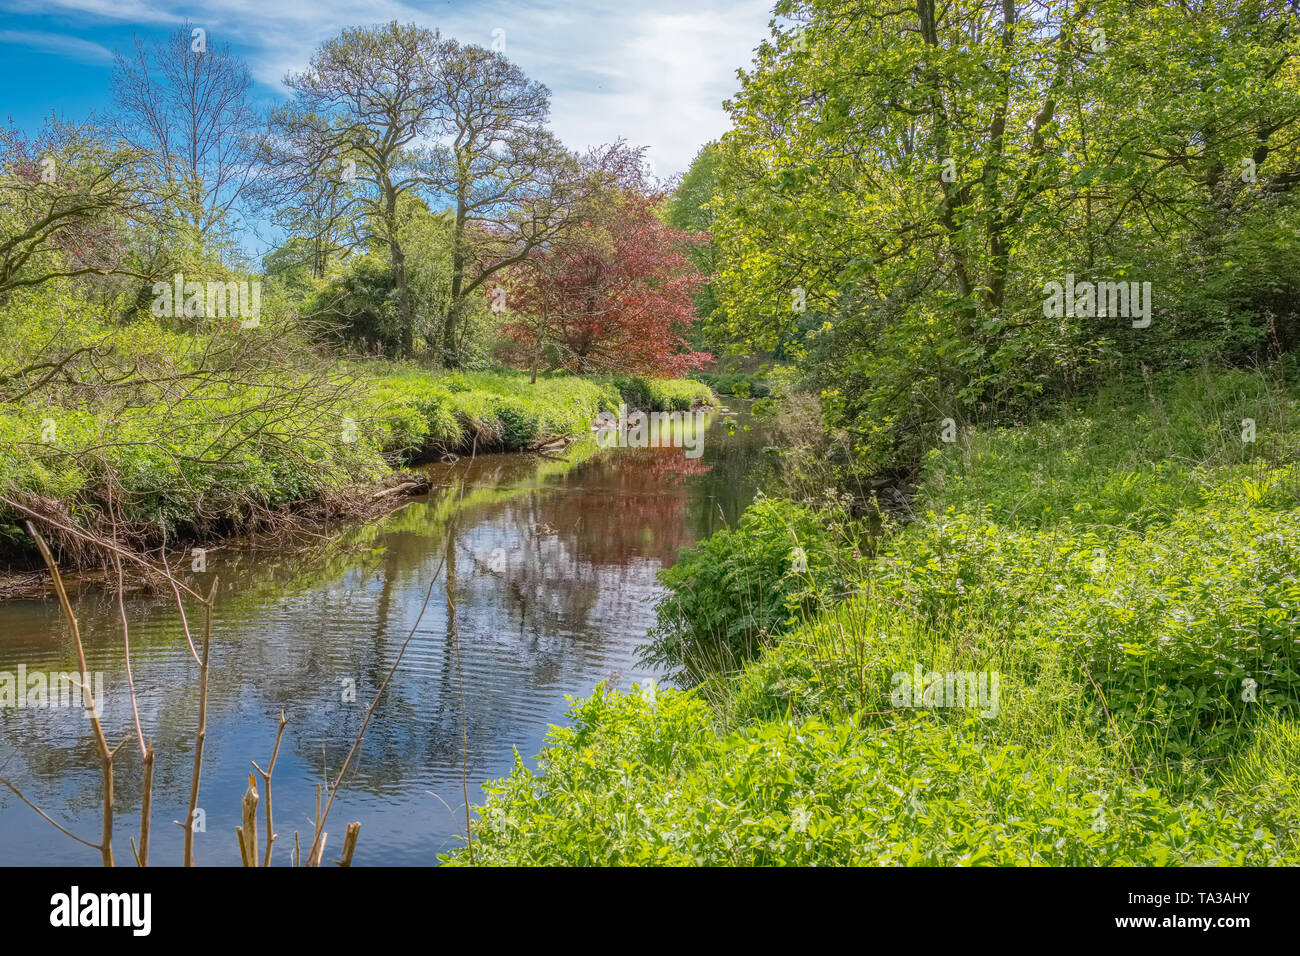 Scottish Country Park at the start of summer as the trees are a lush green colour and a gentle flowing burn or river with reflections in Scotland. - Stock Image